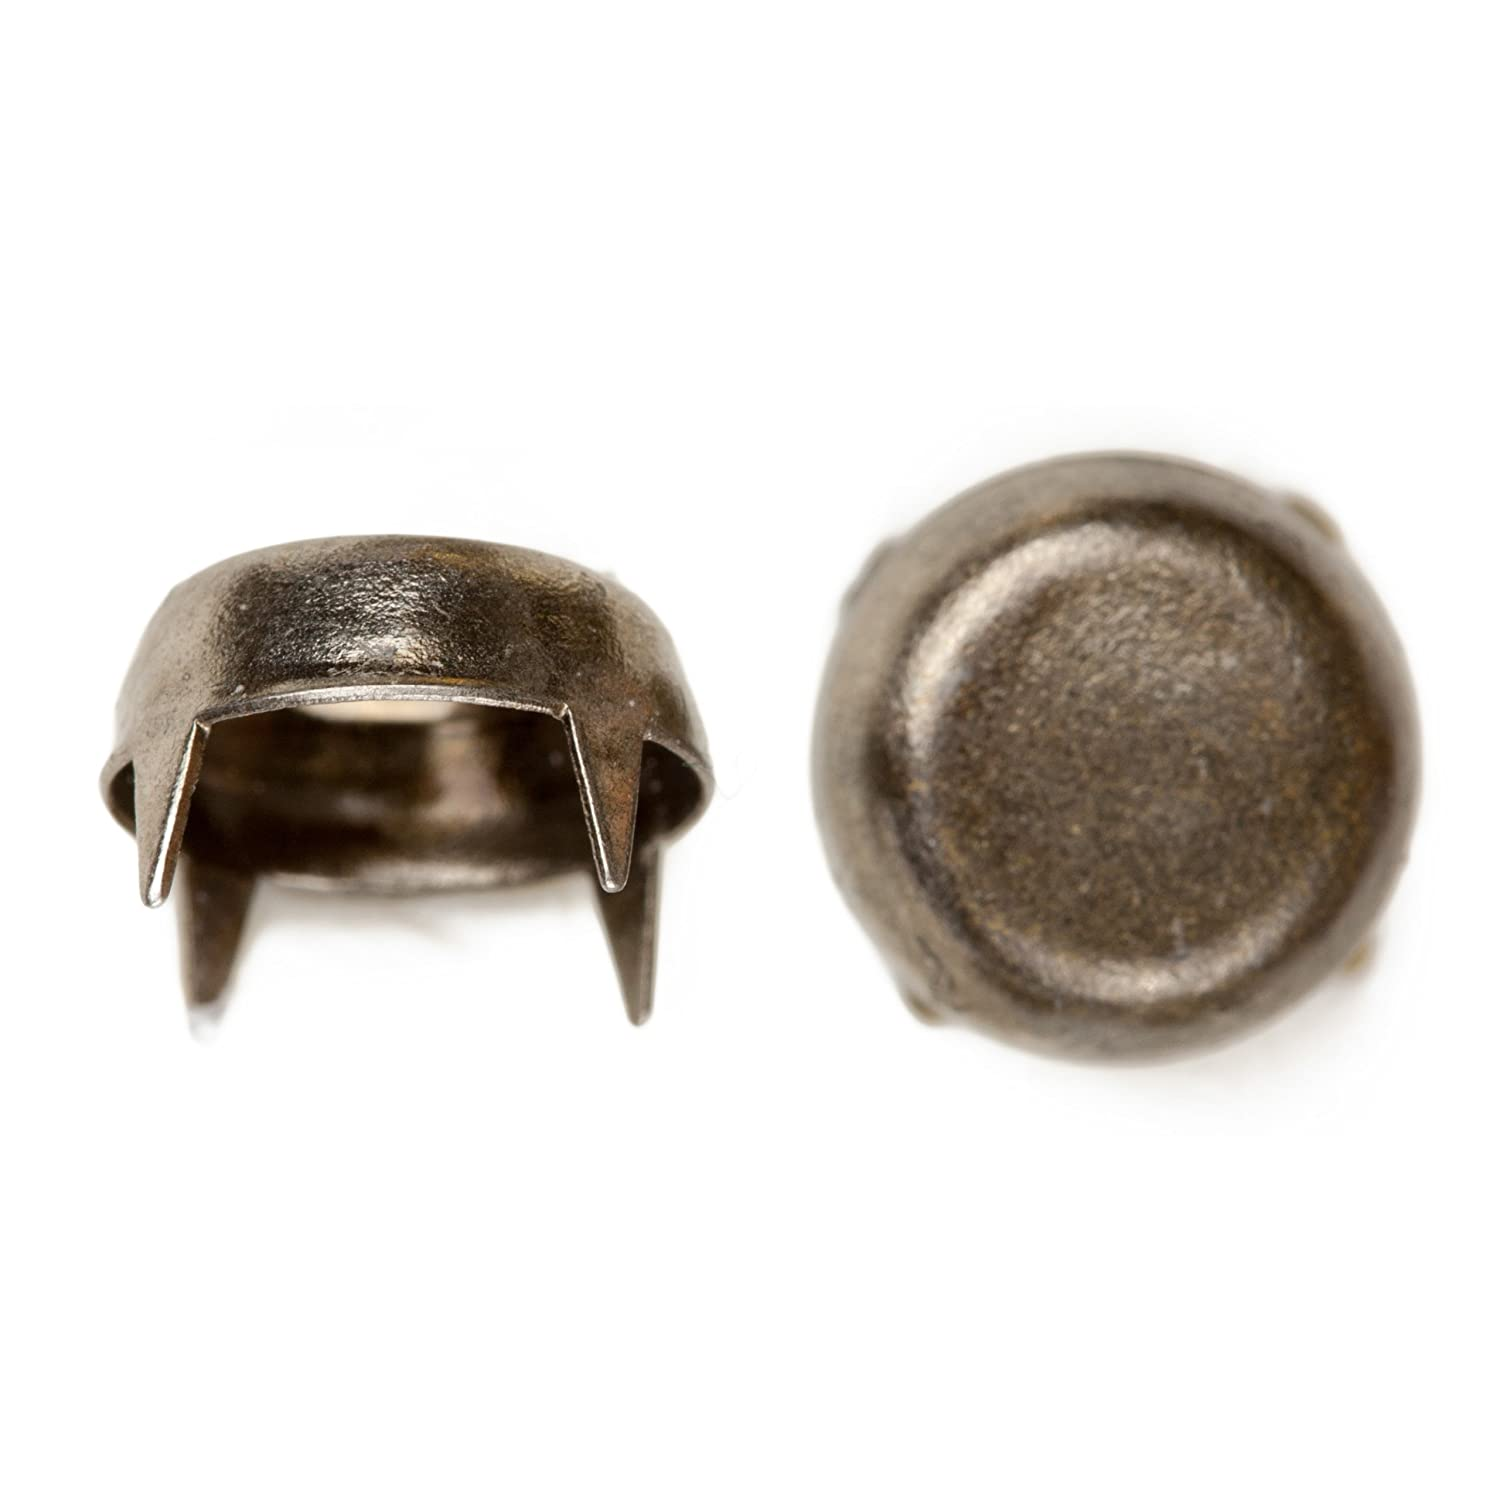 C C Metal Products 1240 Cut Off Cone Nailhead Size 40 Solid Brass Colonial Nickel Finish 200 Pack